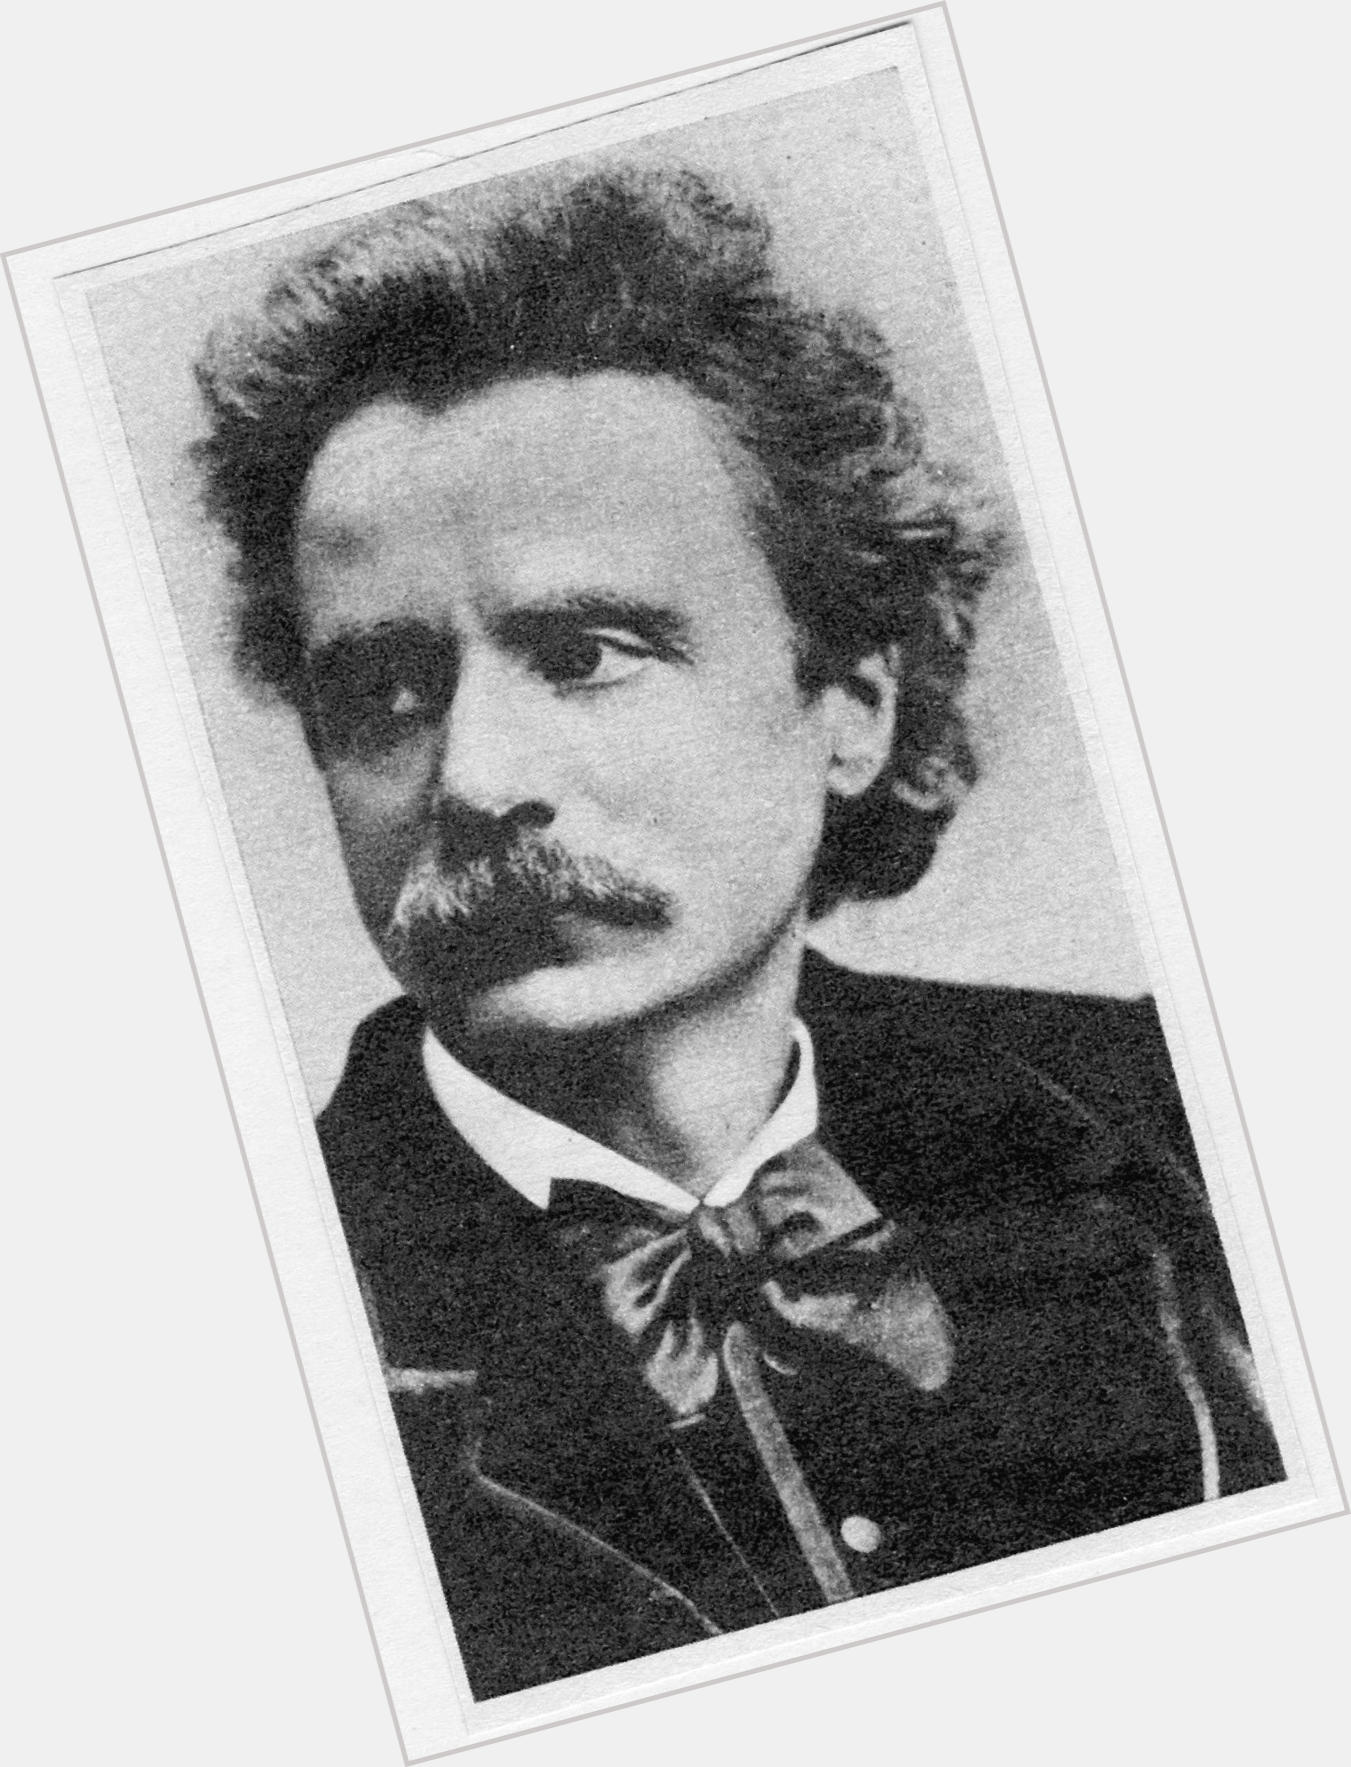 Edvard Grieg exclusive hot pic 10.jpg